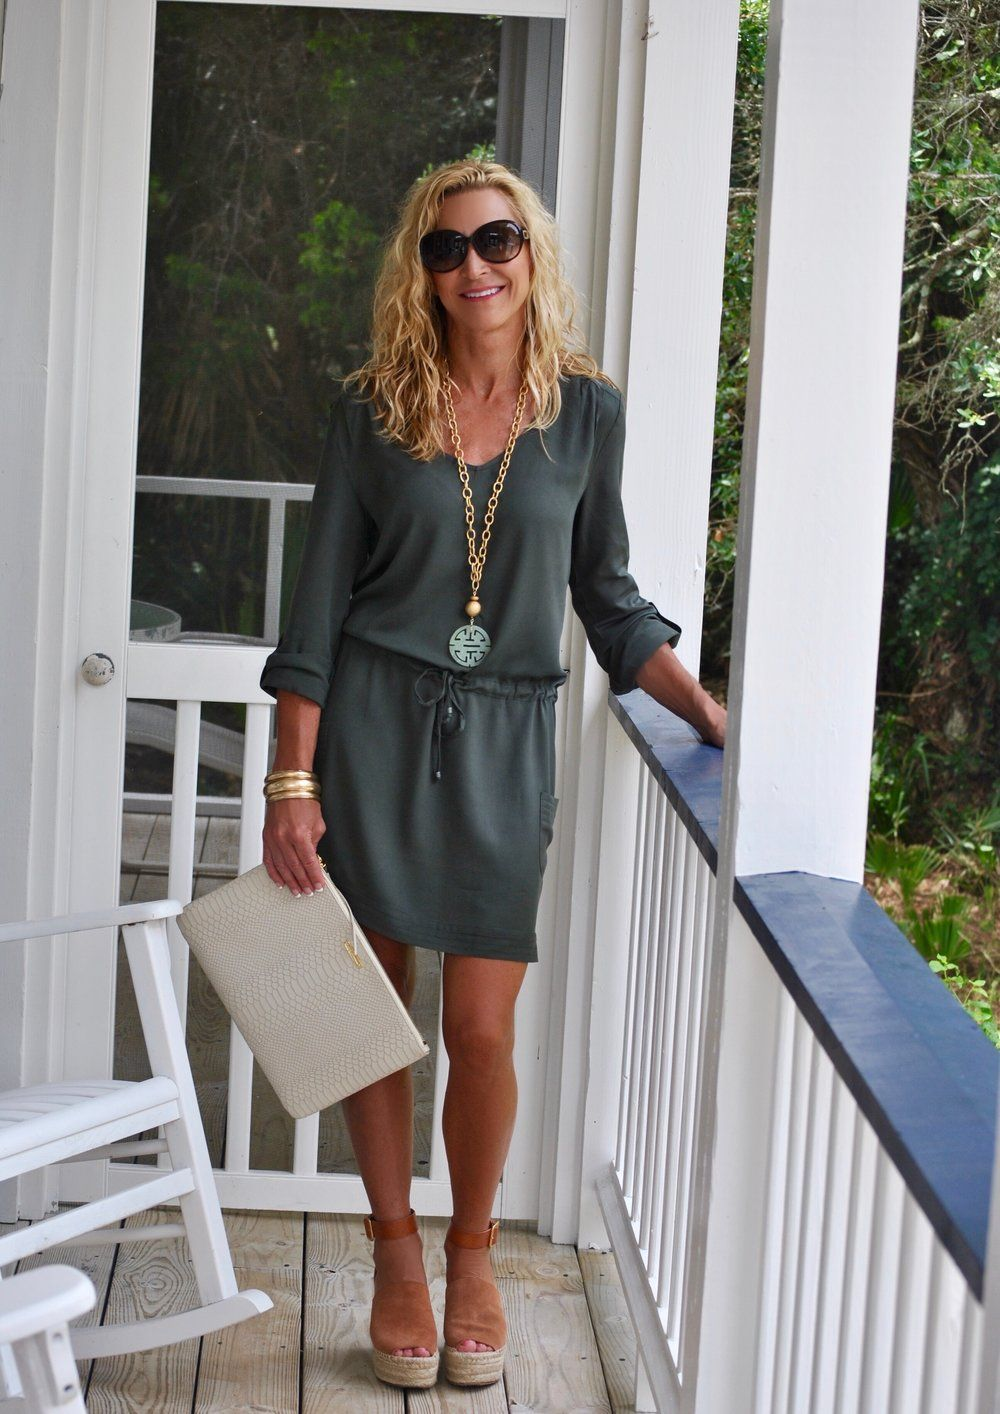 15 Summer Outfit Ideas In 2020 Summer Outfits Women Over 40 Summer Outfits Women 30s Clothes For Women Over 40 [ 1414 x 1000 Pixel ]